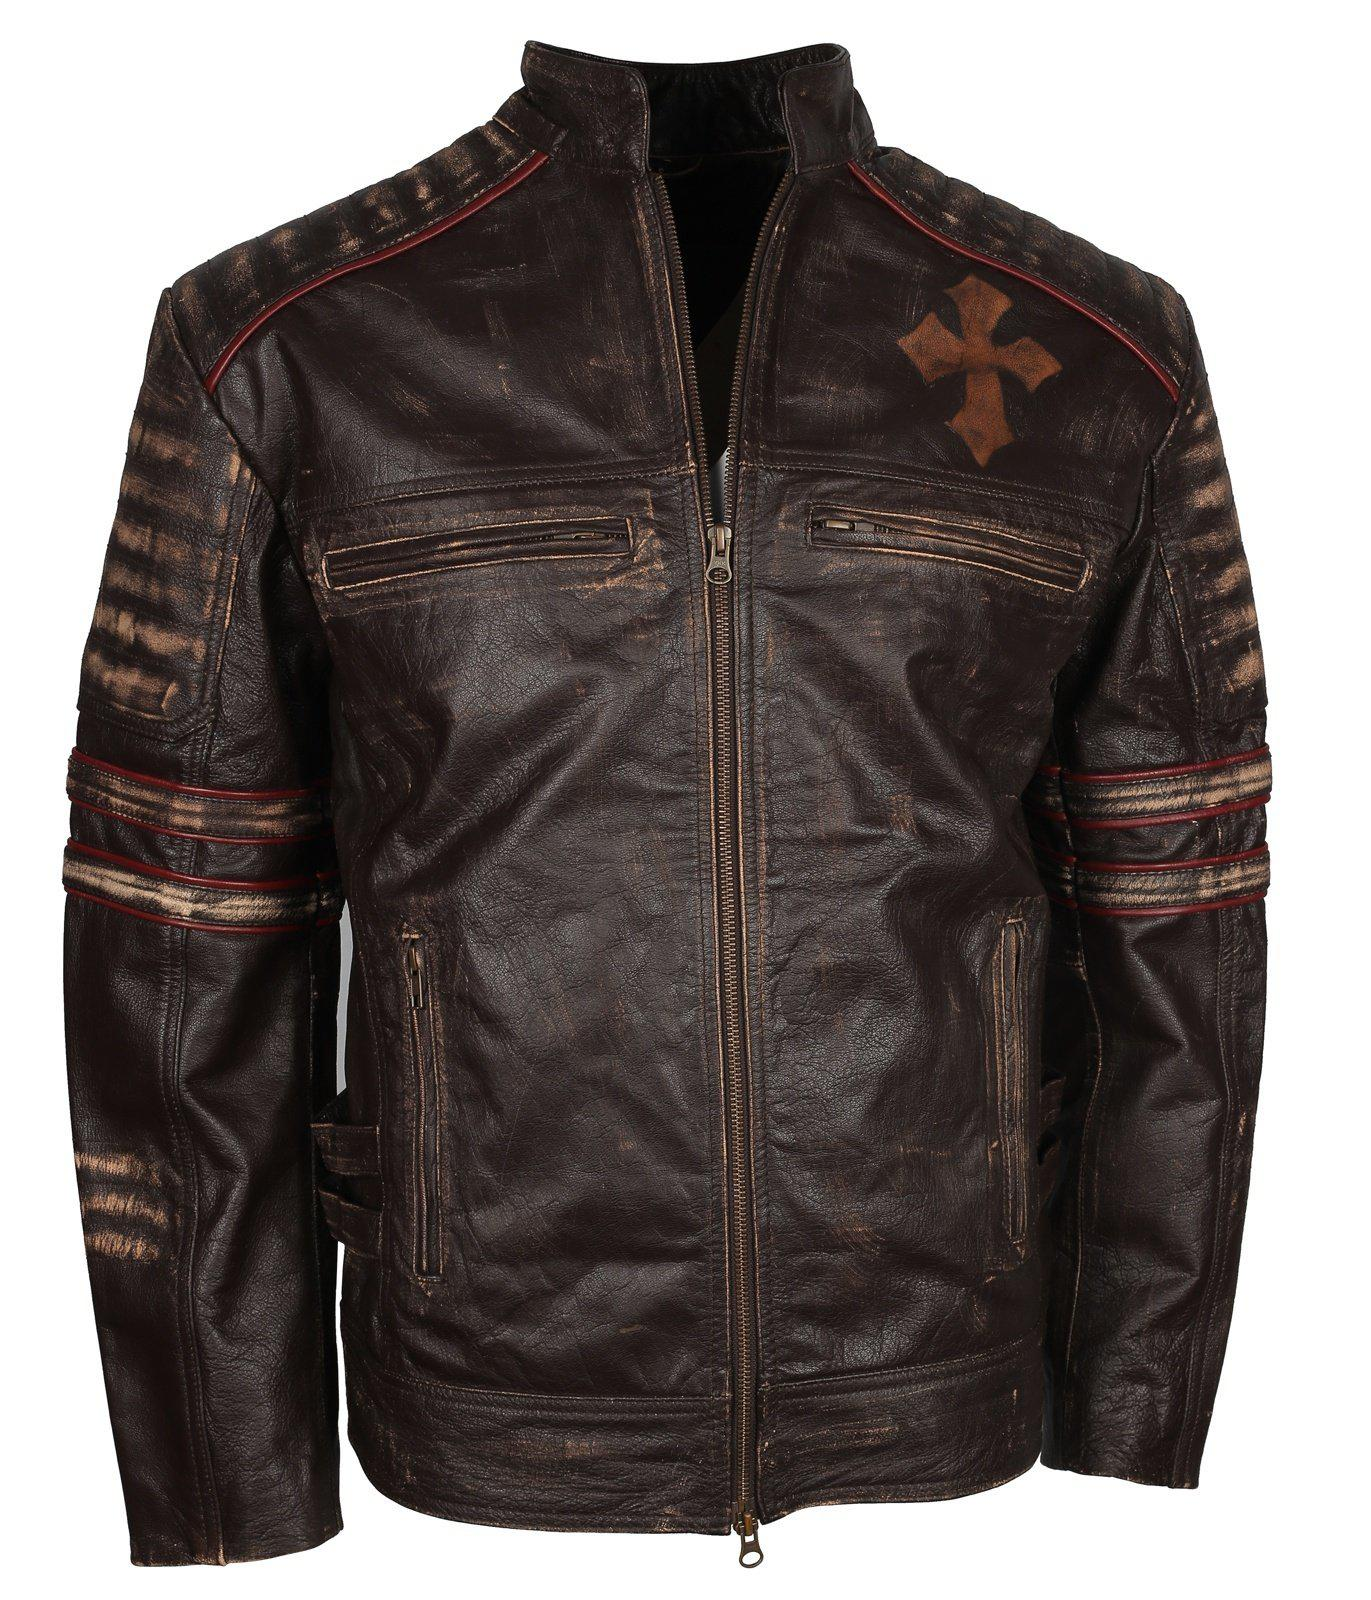 Vintage Leather Jacket - Live to Ride